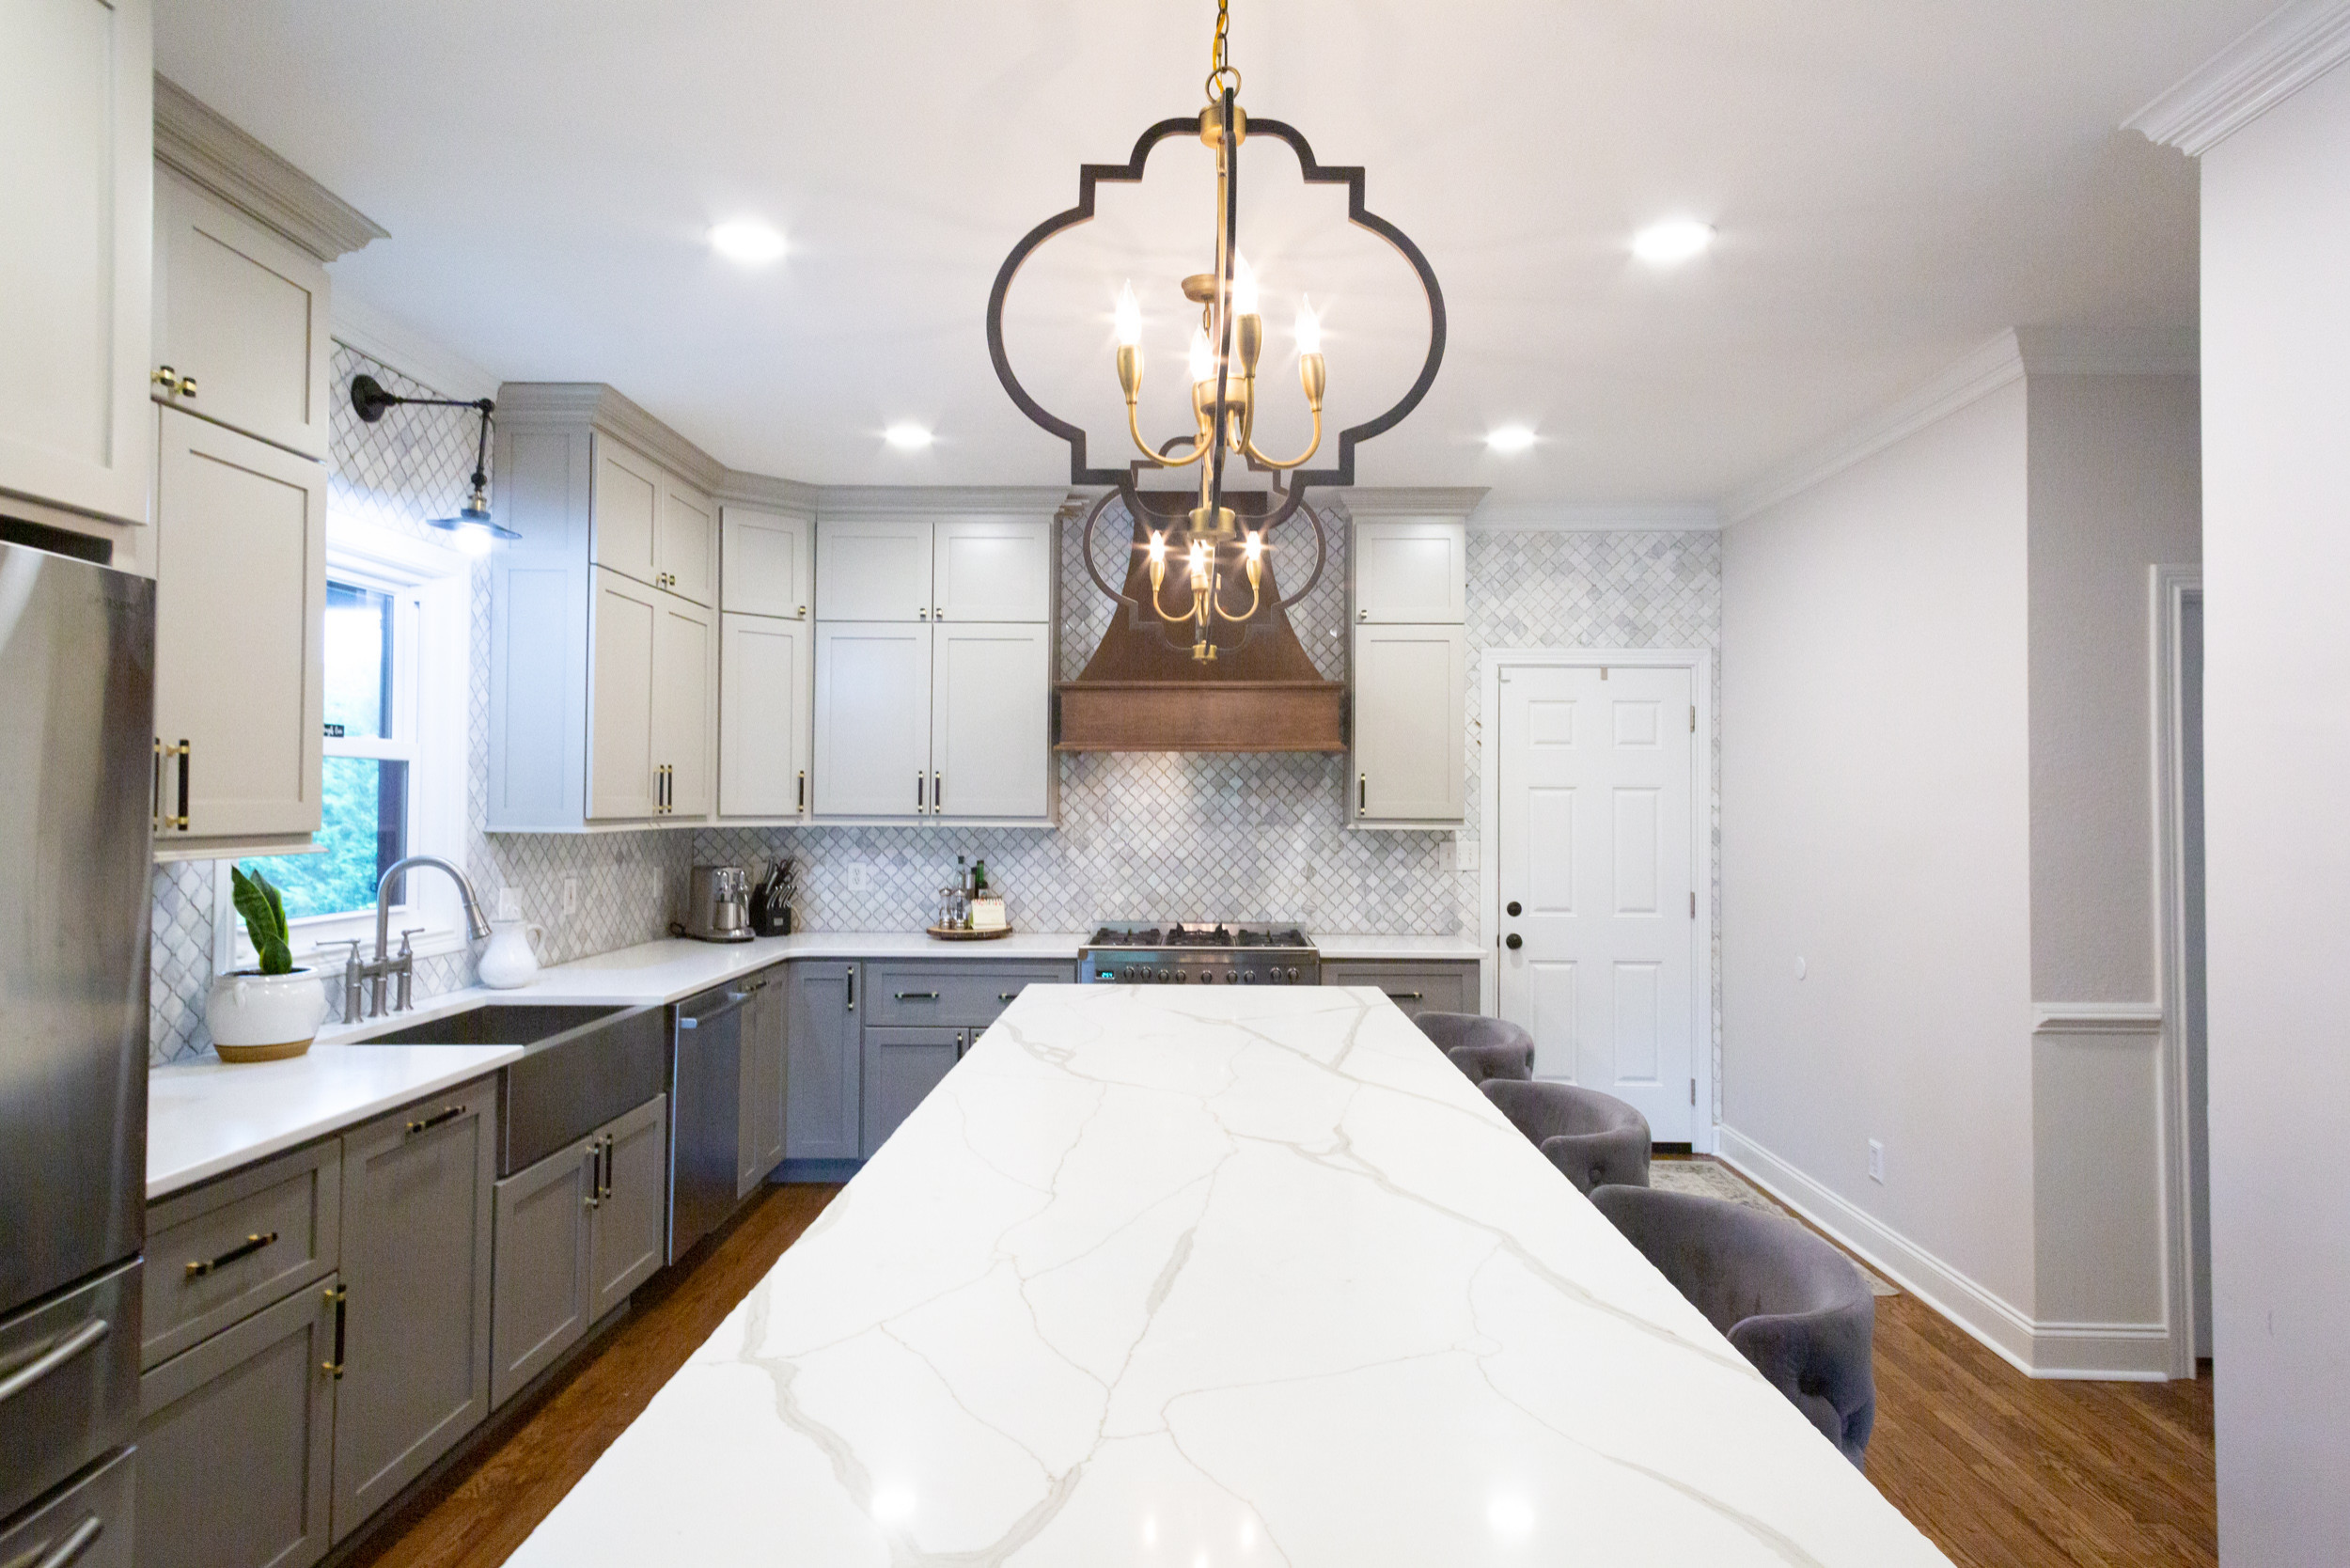 SHADES OF GRAY KITCHEN REMODEL